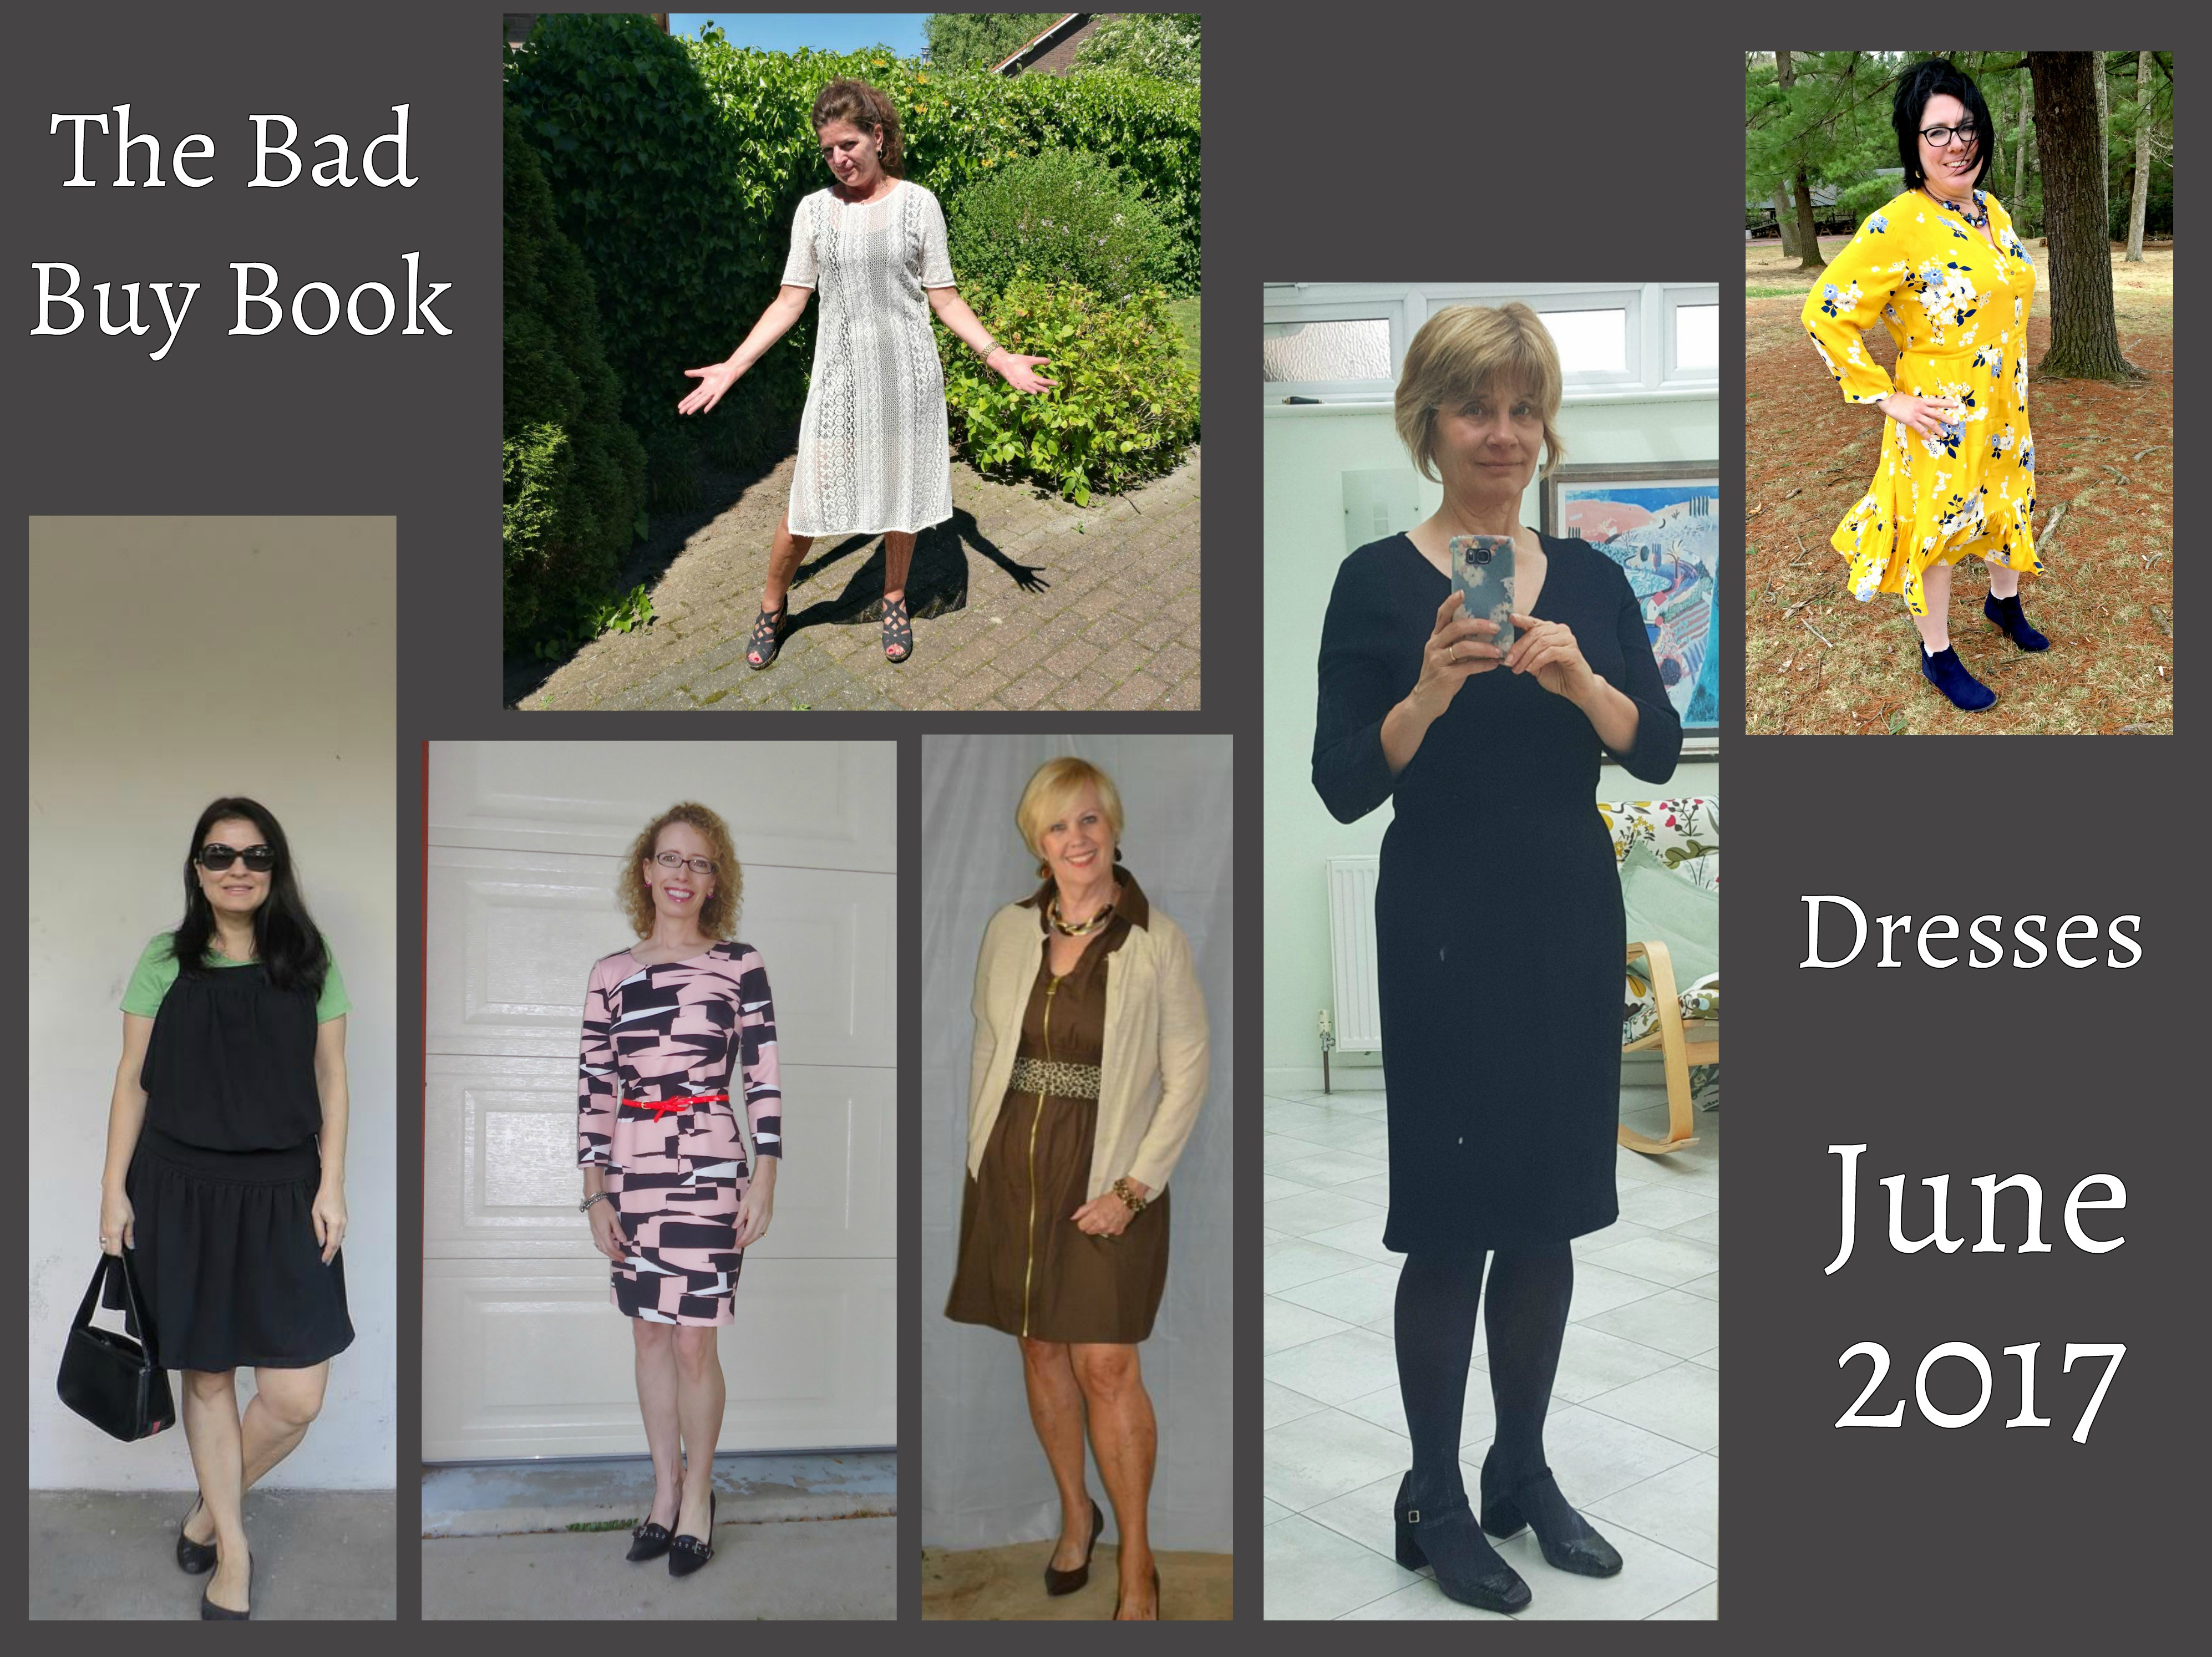 The Bad Buy Book-June 2017-Dresses